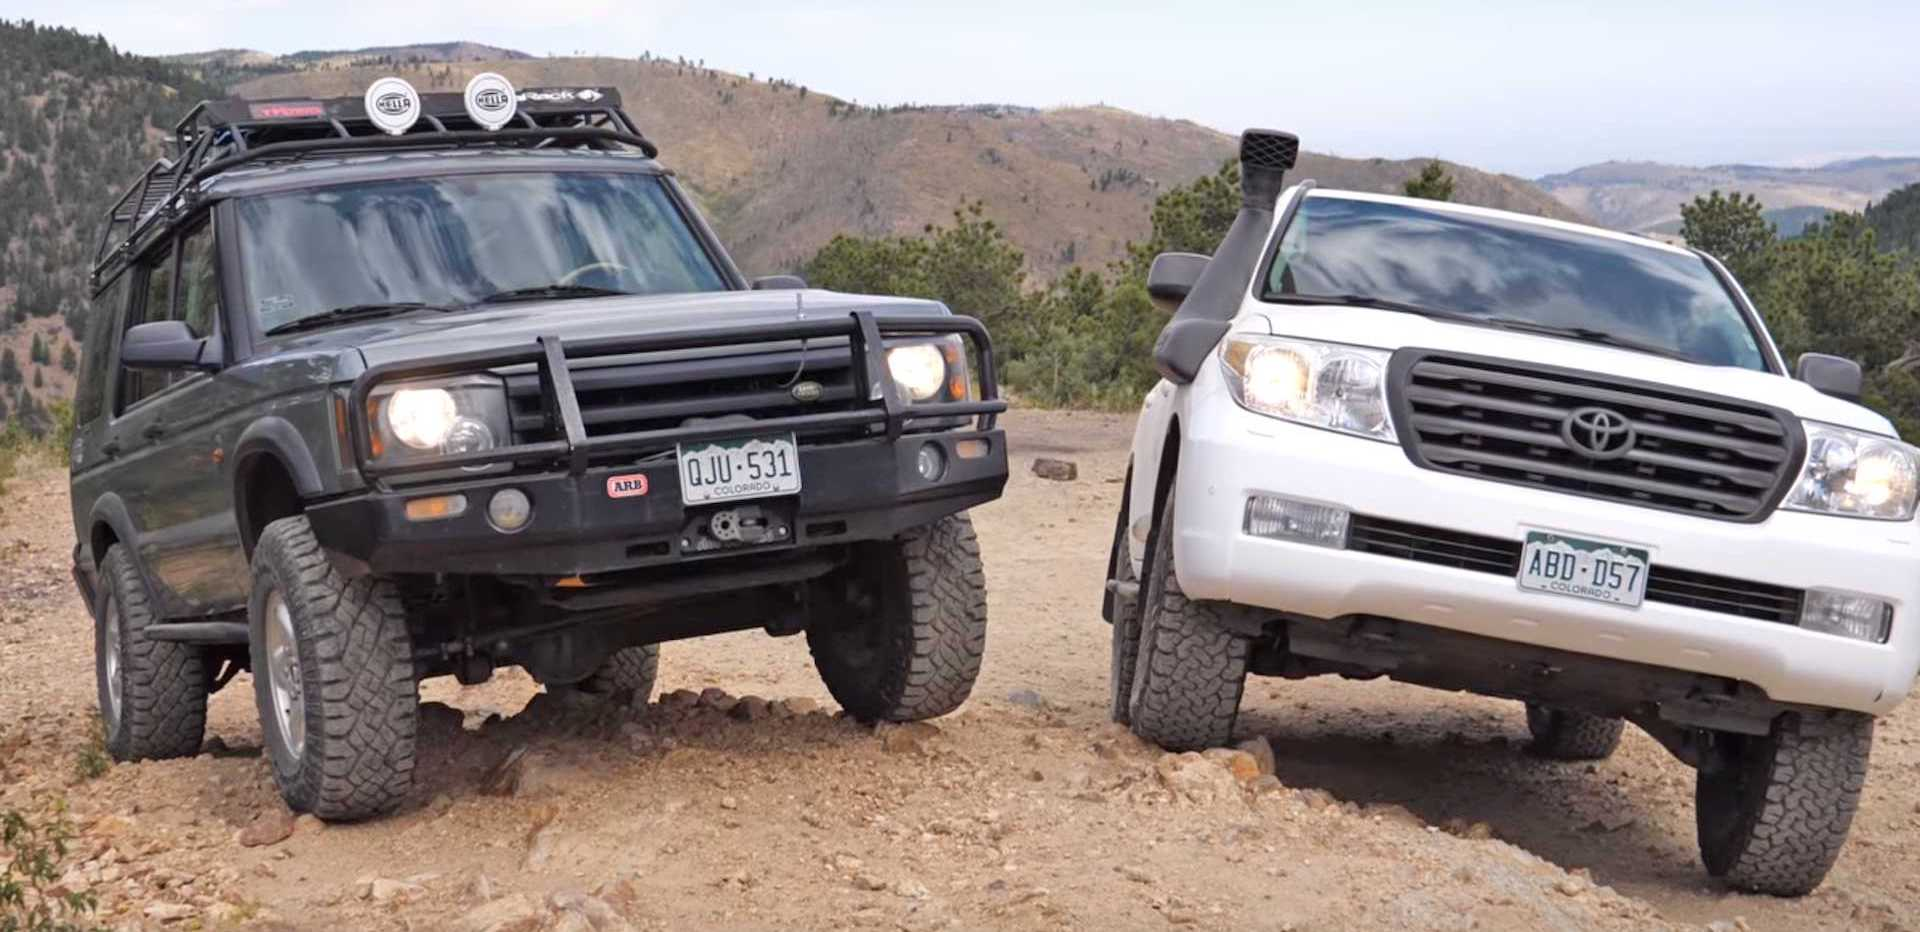 Toyota Land Cruiser And Land Rover Discovery Meet In Off-Road Duel